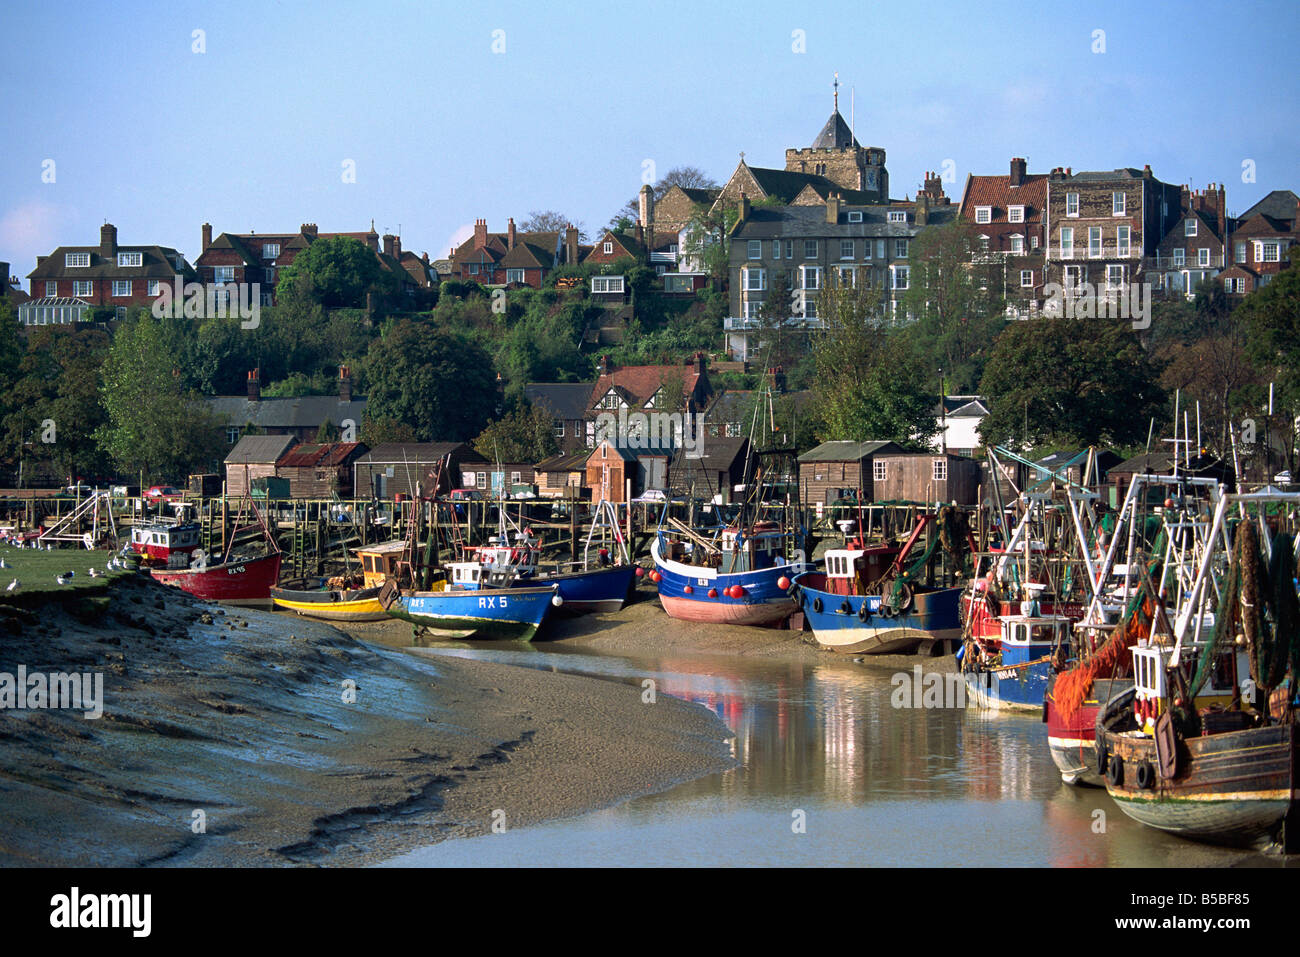 Fishing boats on River Rother, Rye, Sussex, England, Europe - Stock Image